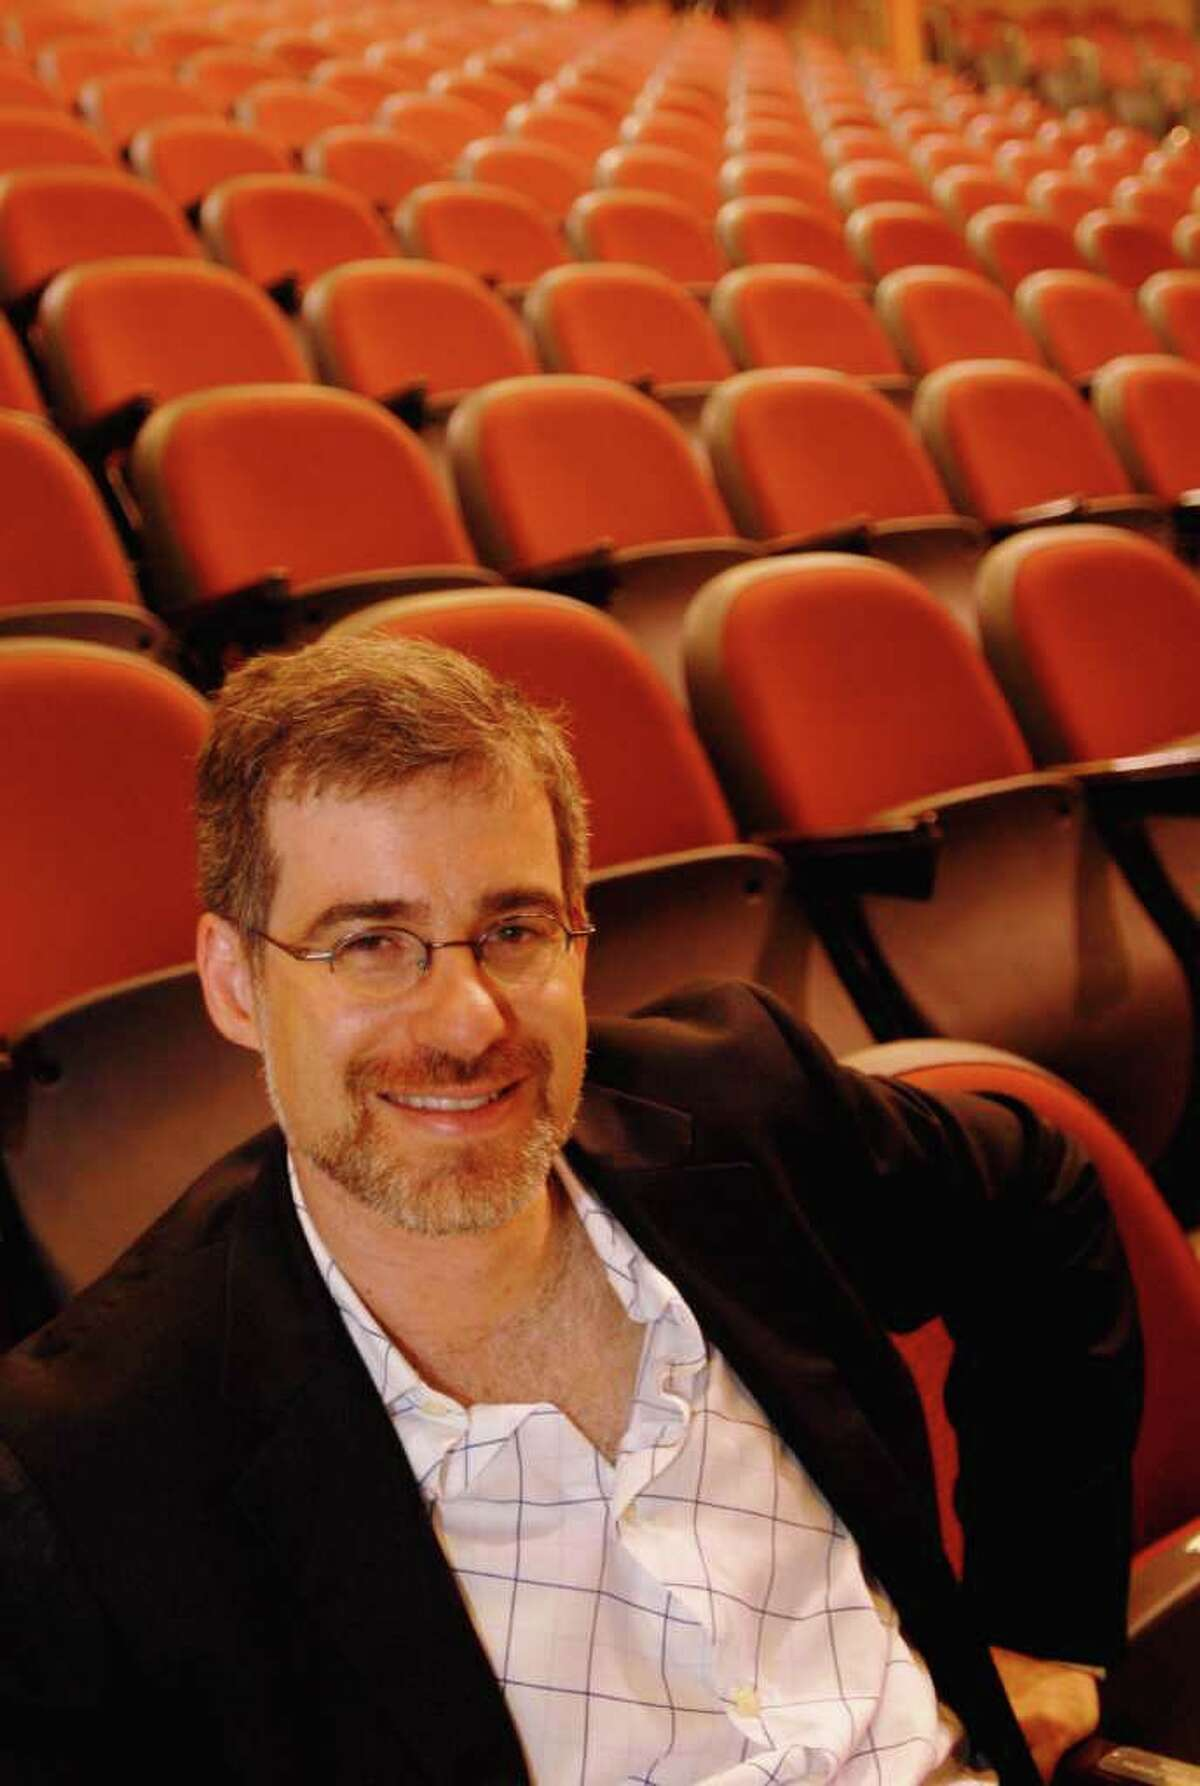 TIMES UNION STAFF PHOTO BY: LUANNE M. FERRIS--Thursday, June 26, 2008, Glens Falls, NY, Mark Fleischer, cq., the Producing Artistic Director of the Adirondack Theatre Festival, which runs through July, with it's shows in the Charles R. Wood Theater, cq., in downtown Glens Falls, NY, in the front row of the theater, on Thursday, June 26, 2008.